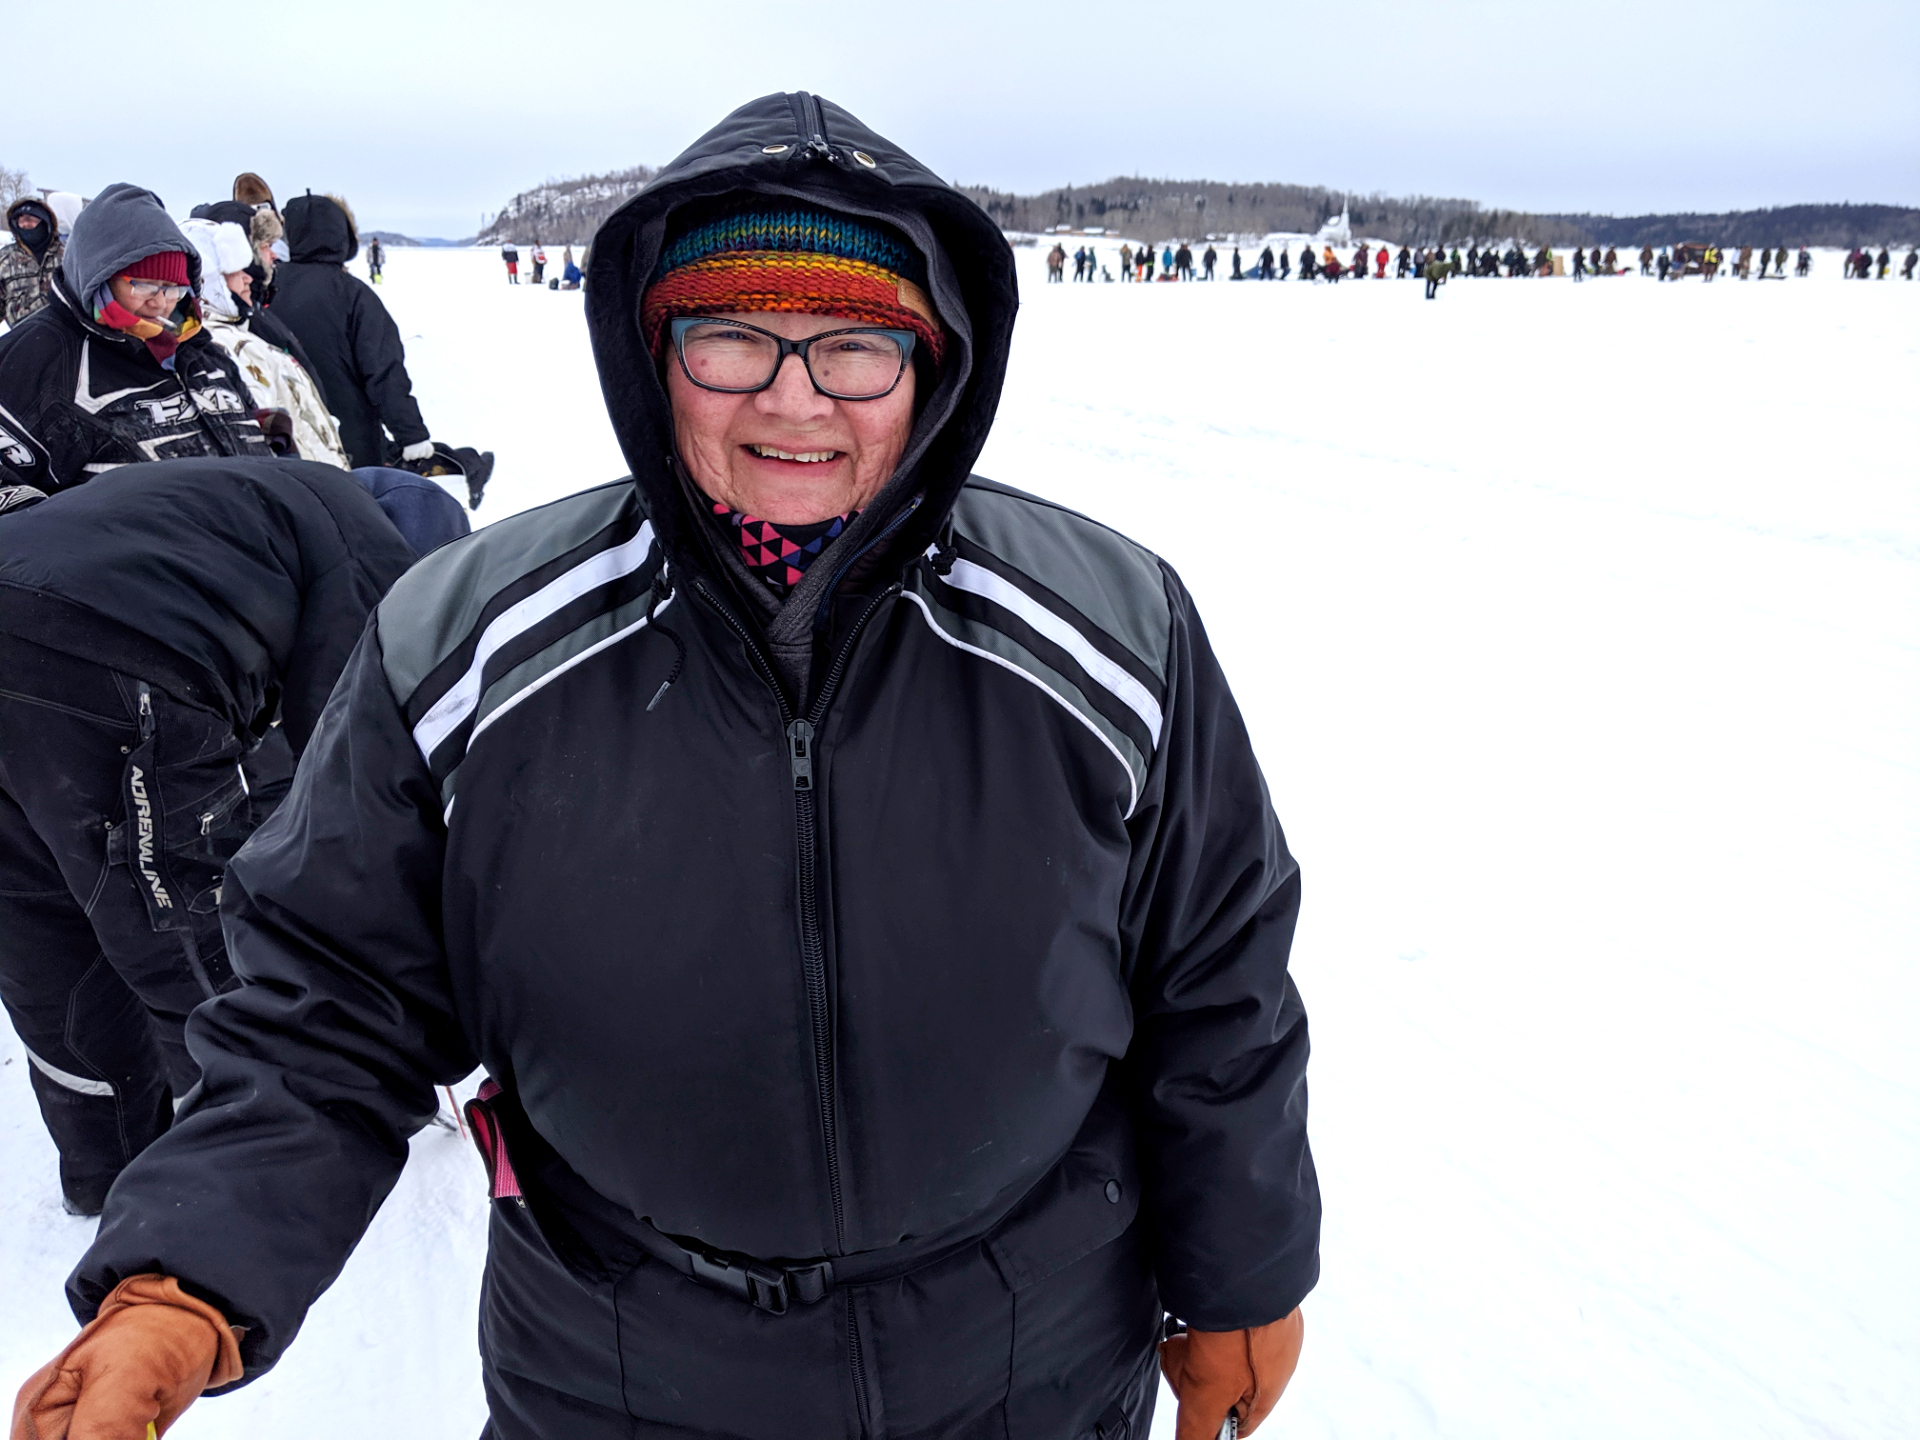 Sallie McLeod is the director of education for the Amachewespimawin First Nation. In March, she was one of hundreds who took part in an annual fish derby in Stanley Mission. (Heidi Atter/CBC)